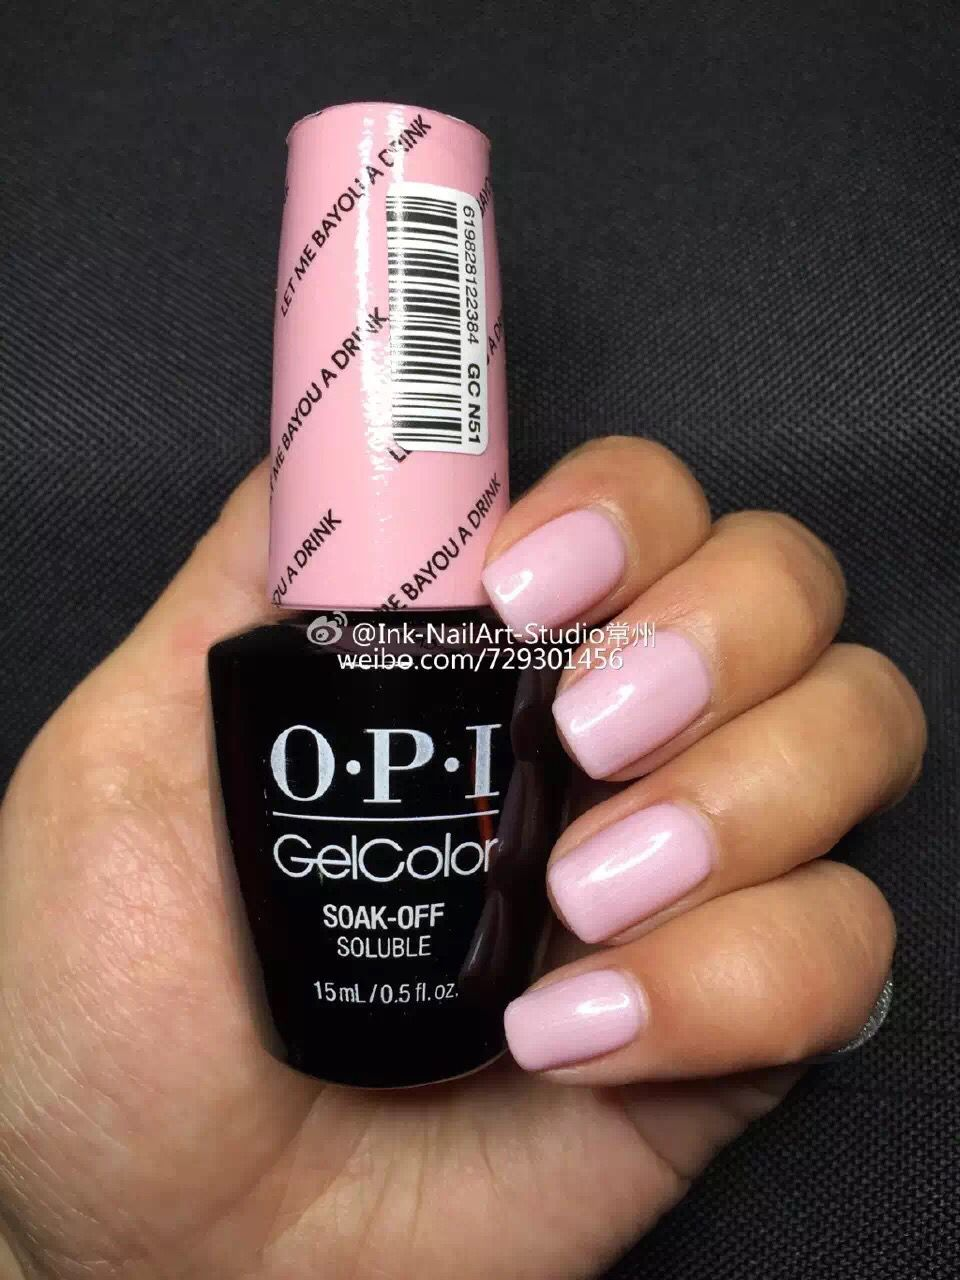 Opi New Orleans With Images Opi Gel Nails Opi Gel Nail Colors